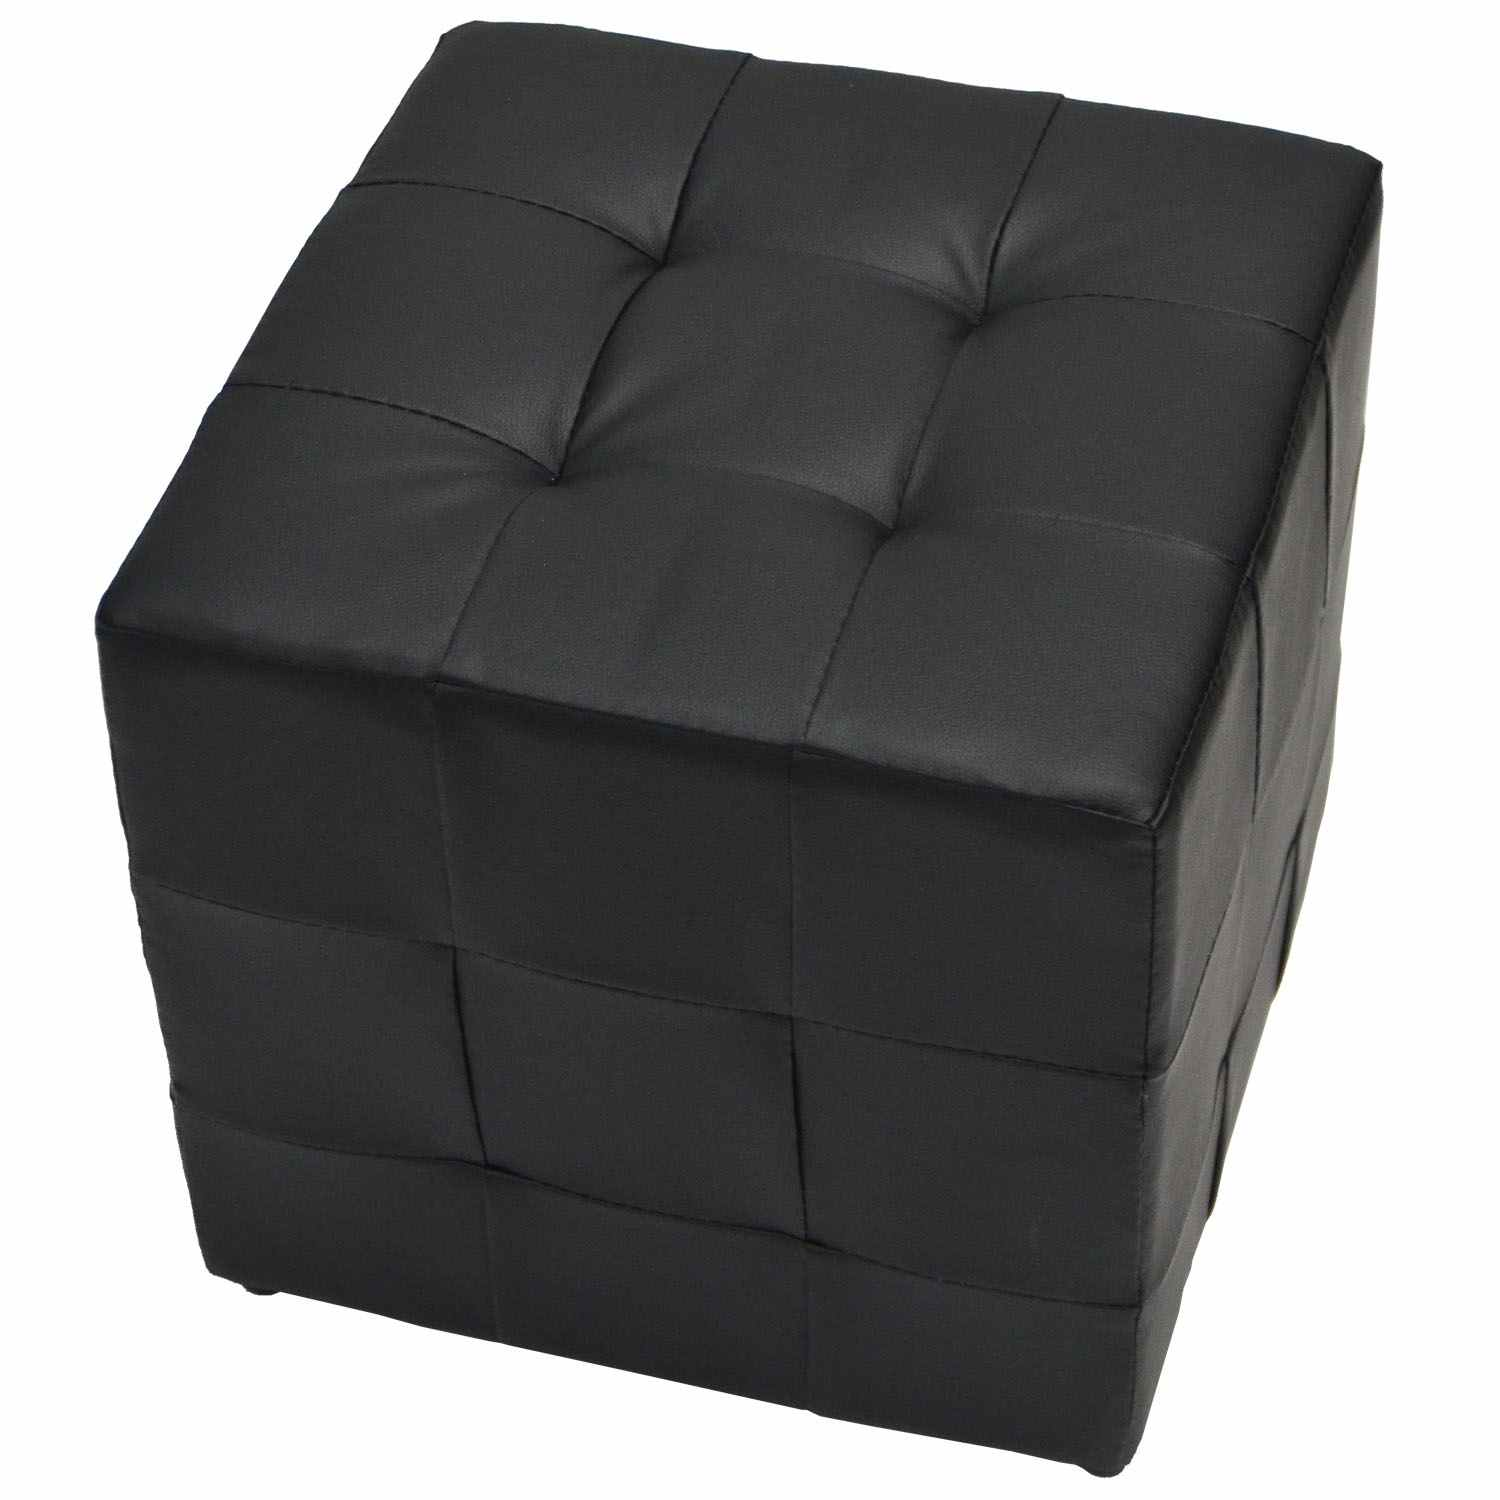 pouf carre noir meilleures images d 39 inspiration pour votre design de maison. Black Bedroom Furniture Sets. Home Design Ideas